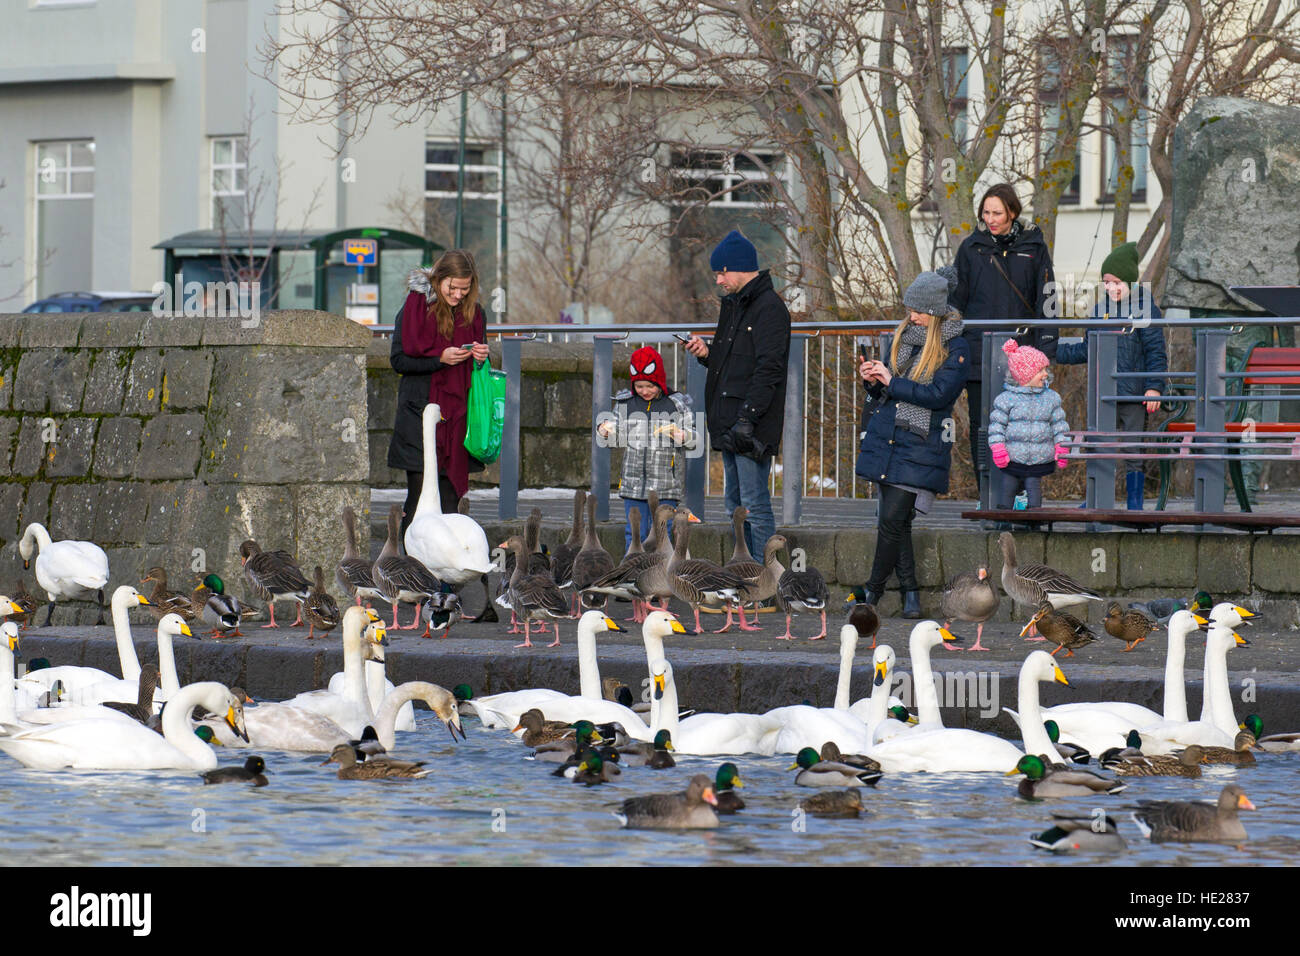 Parents checking smartphones while children are feeding ducks, geese and flock of whooper swans at lake in city - Stock Image